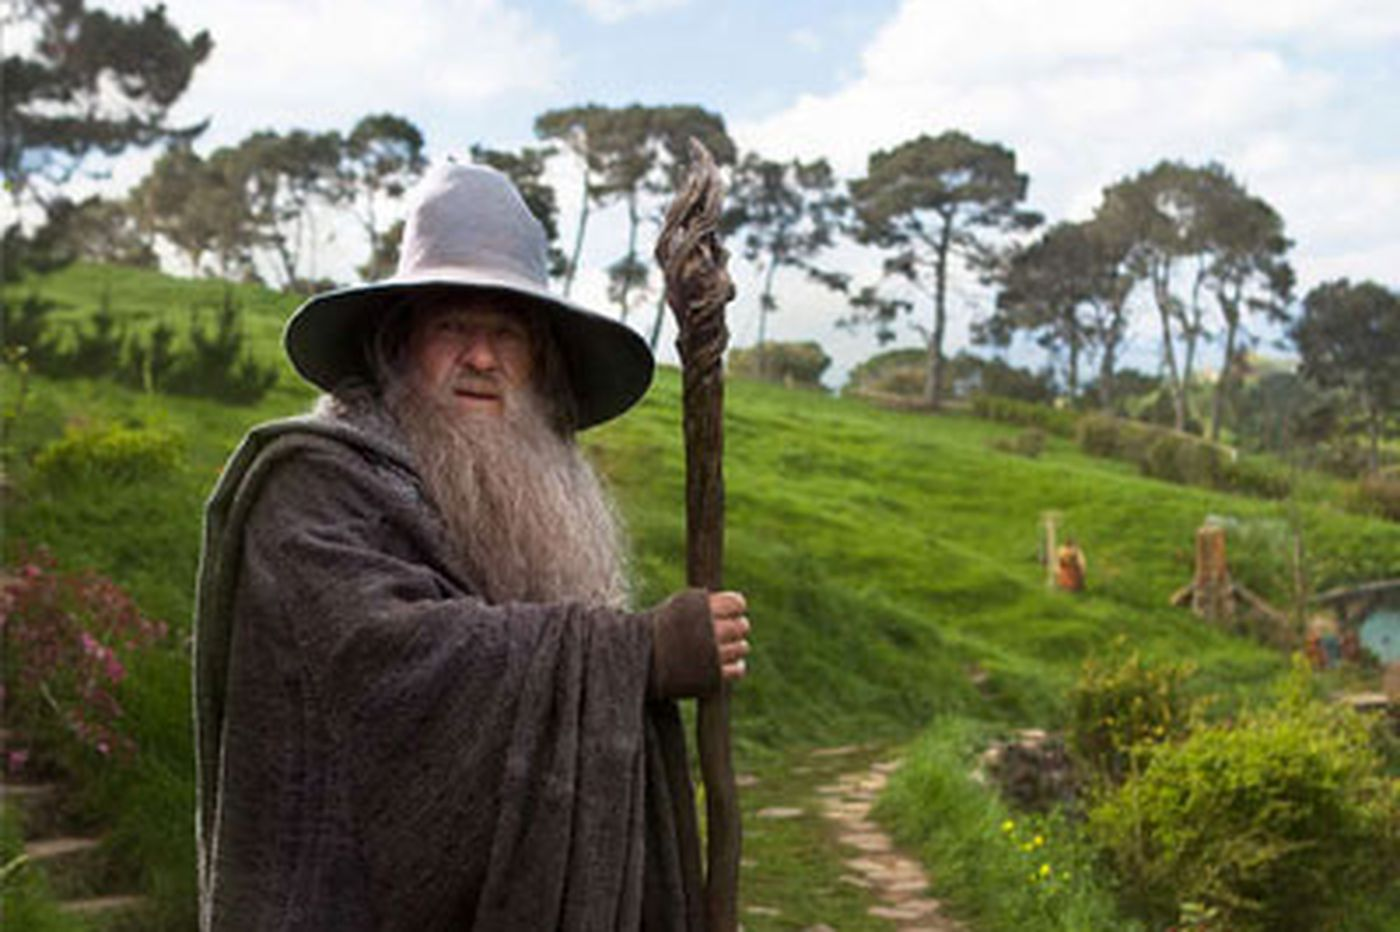 'The Hobbit: An Unexpected Journey': What happened to the magic?